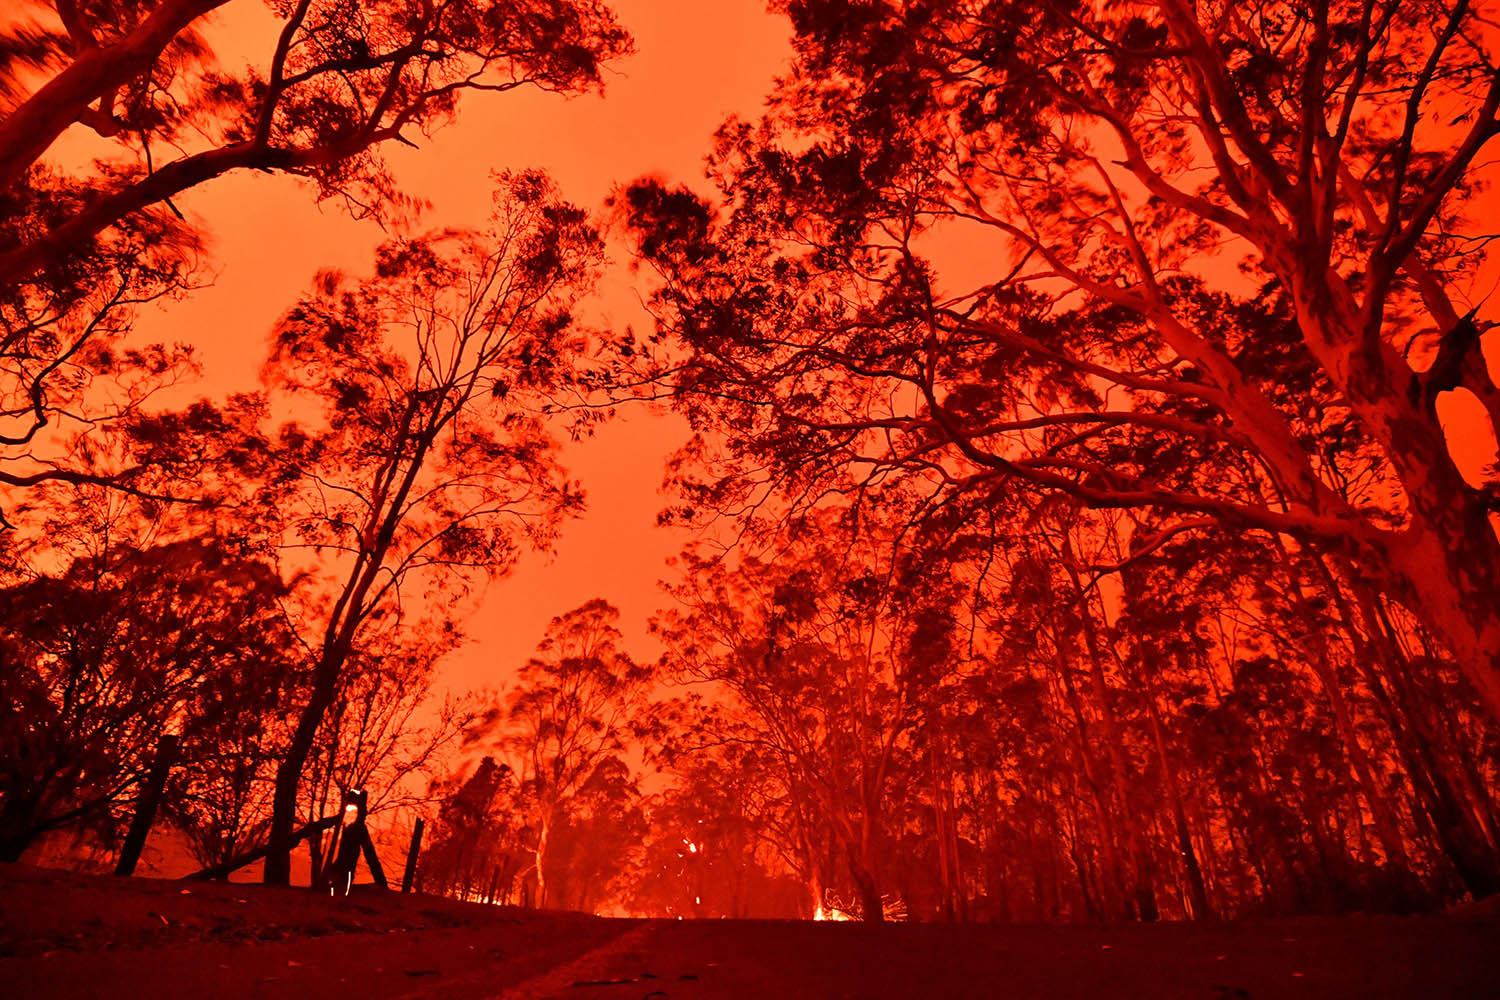 The afternoon sky glows red from bushfires near the town of Nowra on Dec. 31. Thousands of tourists and locals were forced to flee to beaches in fire-ravaged southeast Australia just before the new year as blazes ripped through popular tourist areas leaving no escape by land. SAEED KHAN/AFP via Getty Images